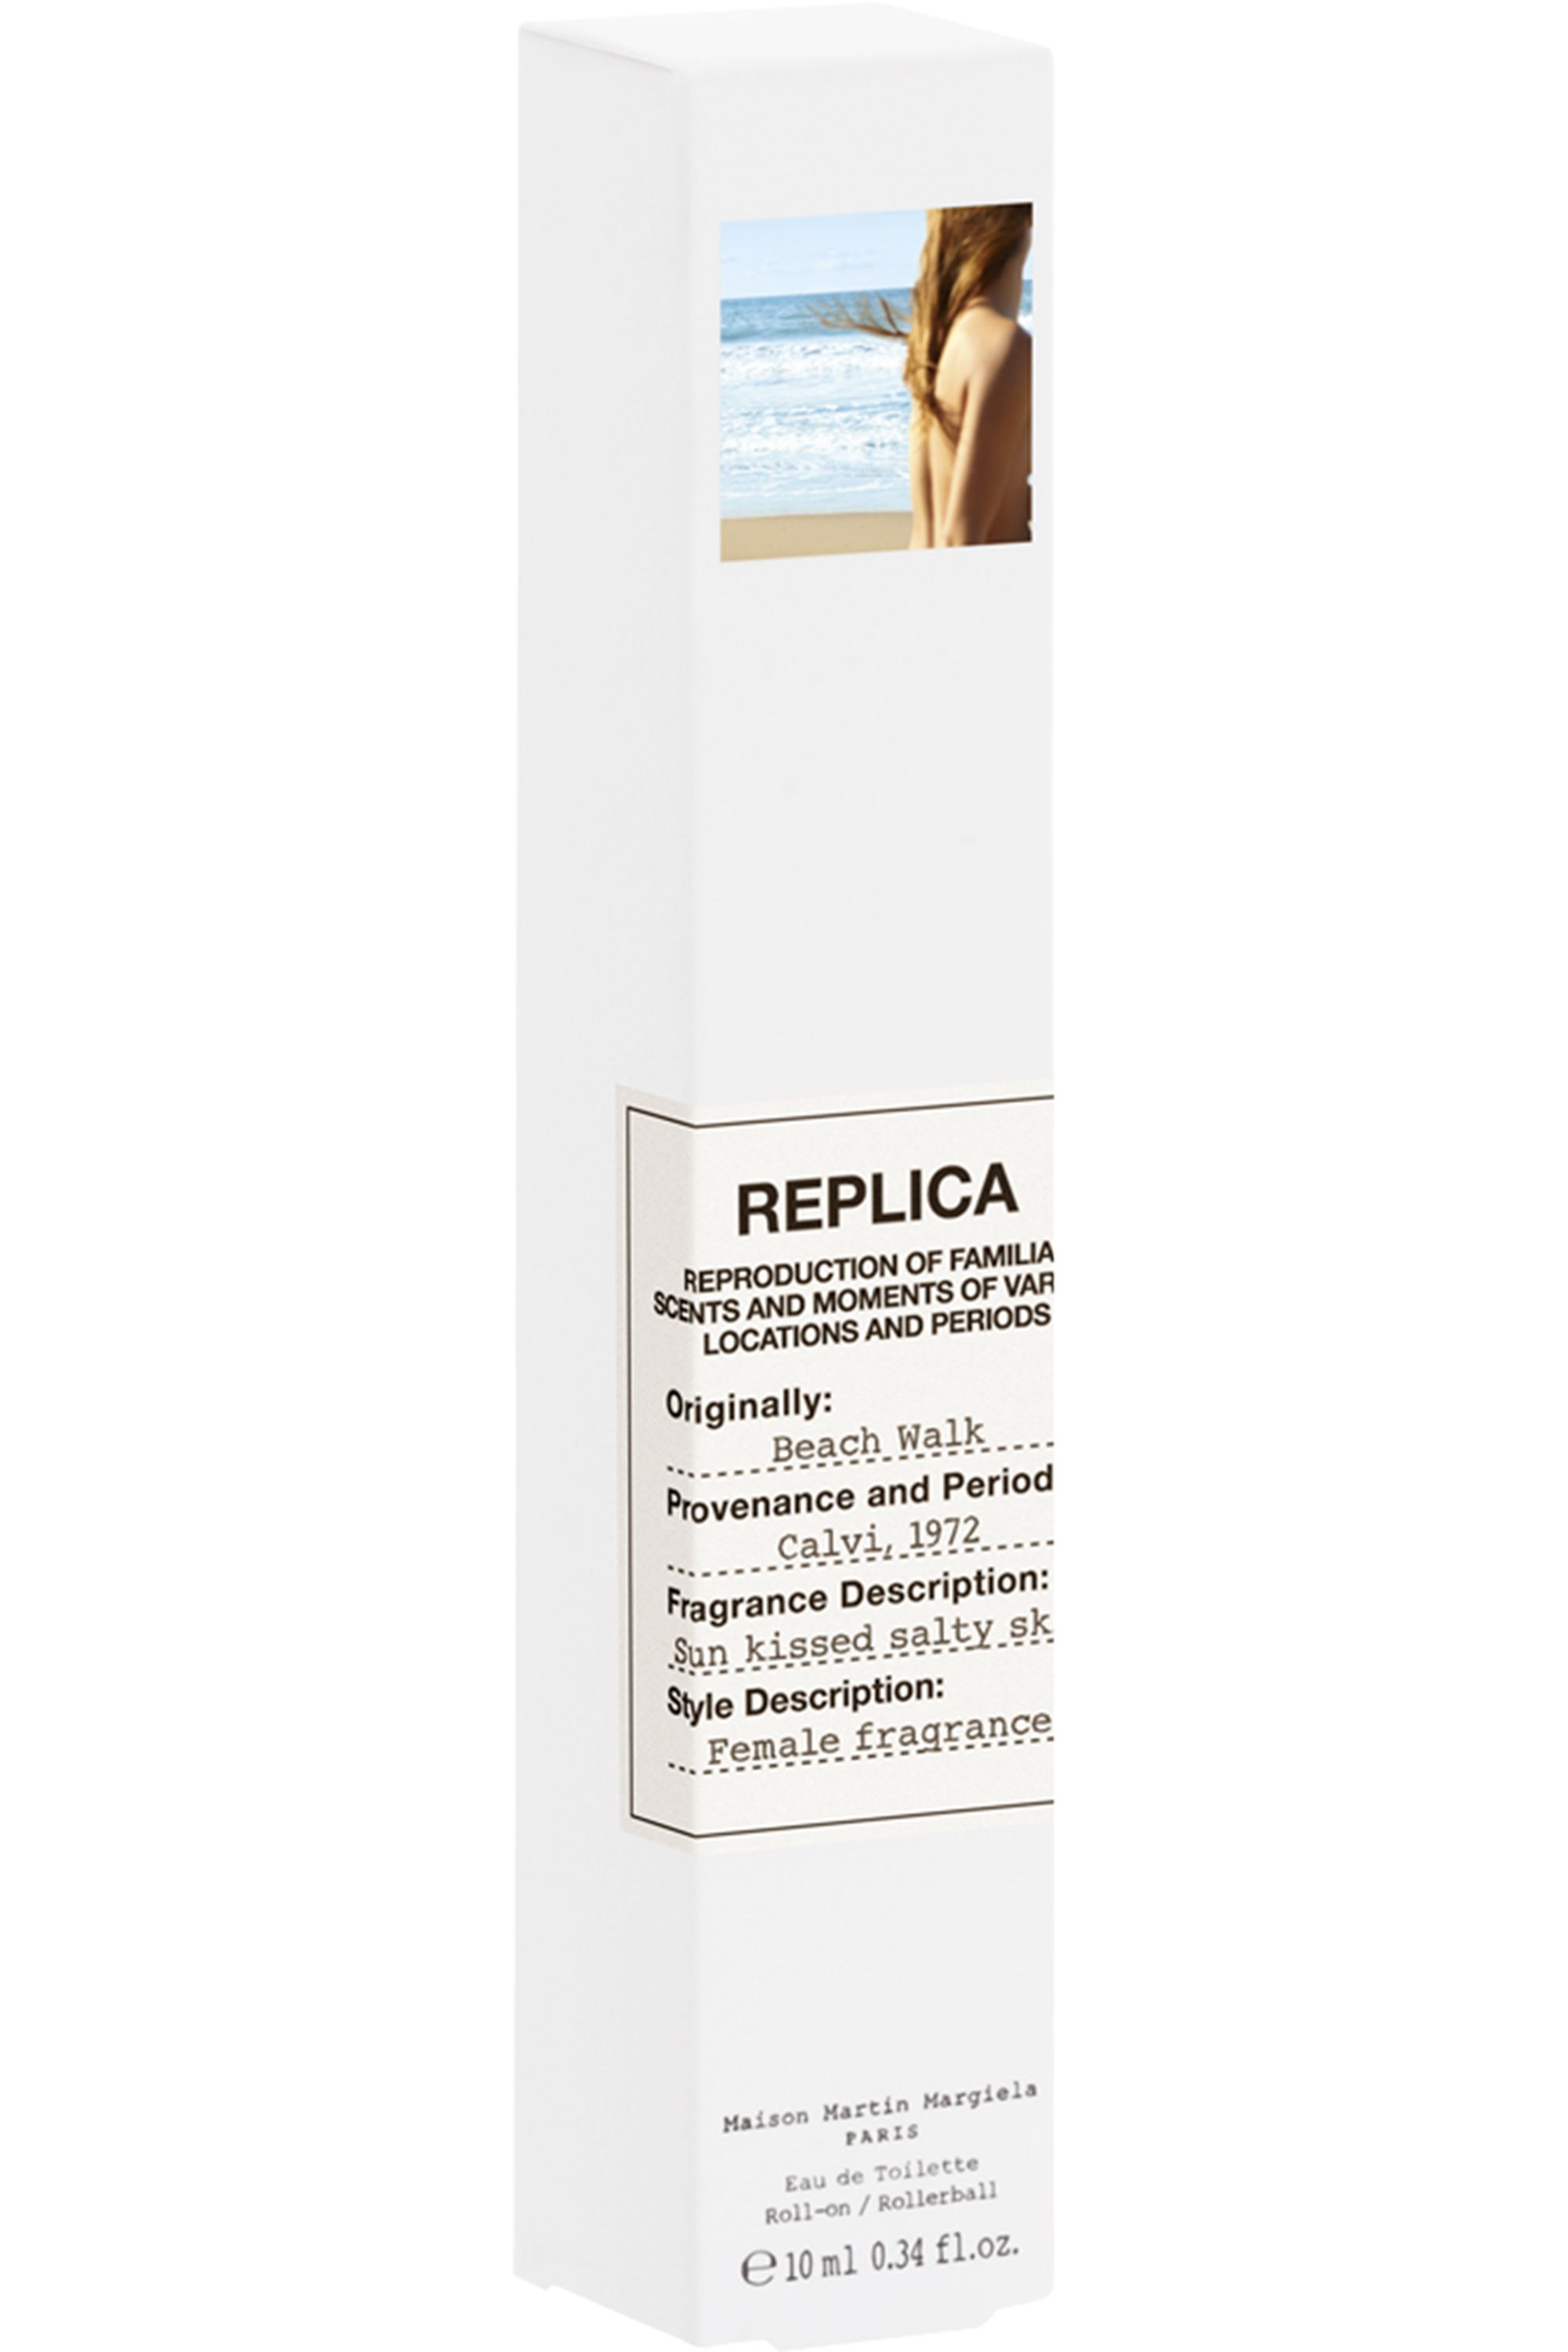 Blissim : Maison Margiela - Eau De Toilette Floral REPLICA Beach Walk 10ml - Eau De Toilette Floral REPLICA Beach Walk 10ml